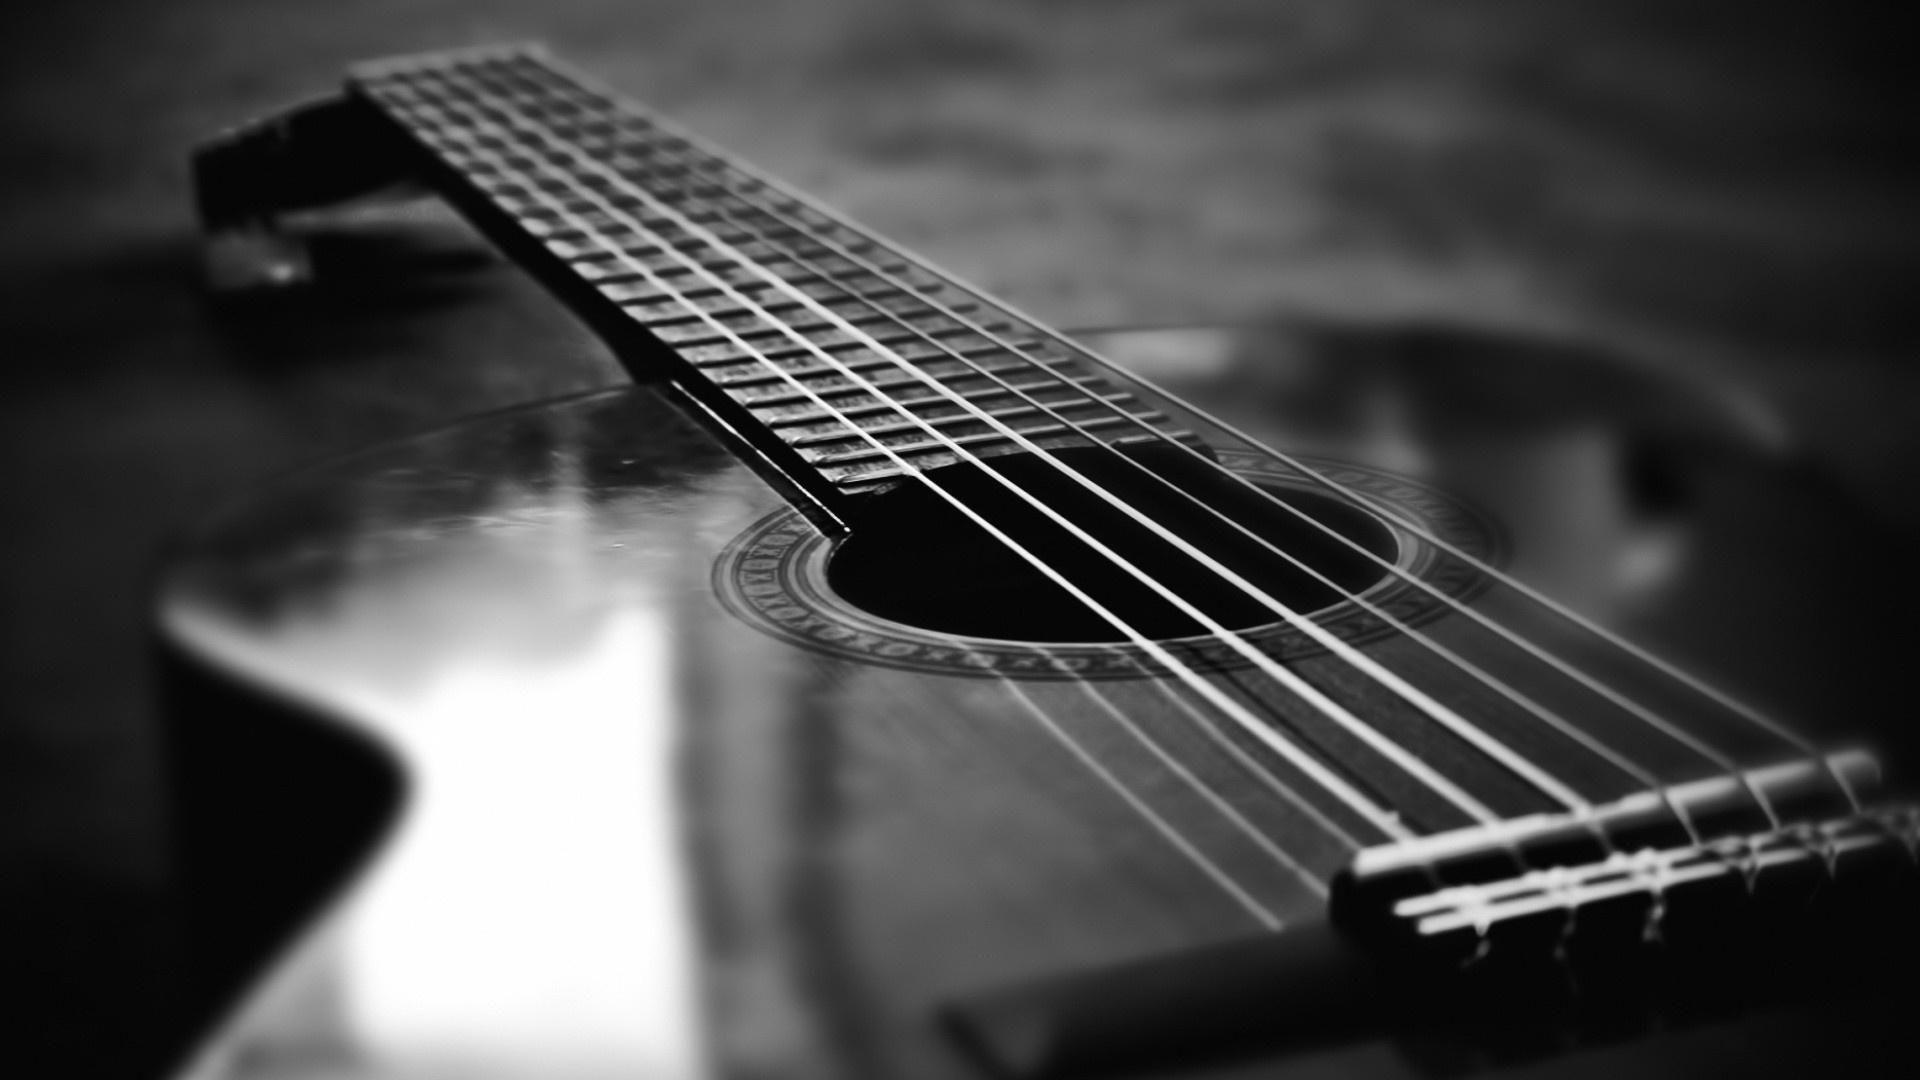 Black And White Guitar Wallpapers Group 1600 1200 Guitar Picture Wallpapers 48 Wallpapers Adora Guitar Wallpaper Iphone Laptop Wallpaper Guitar Collection